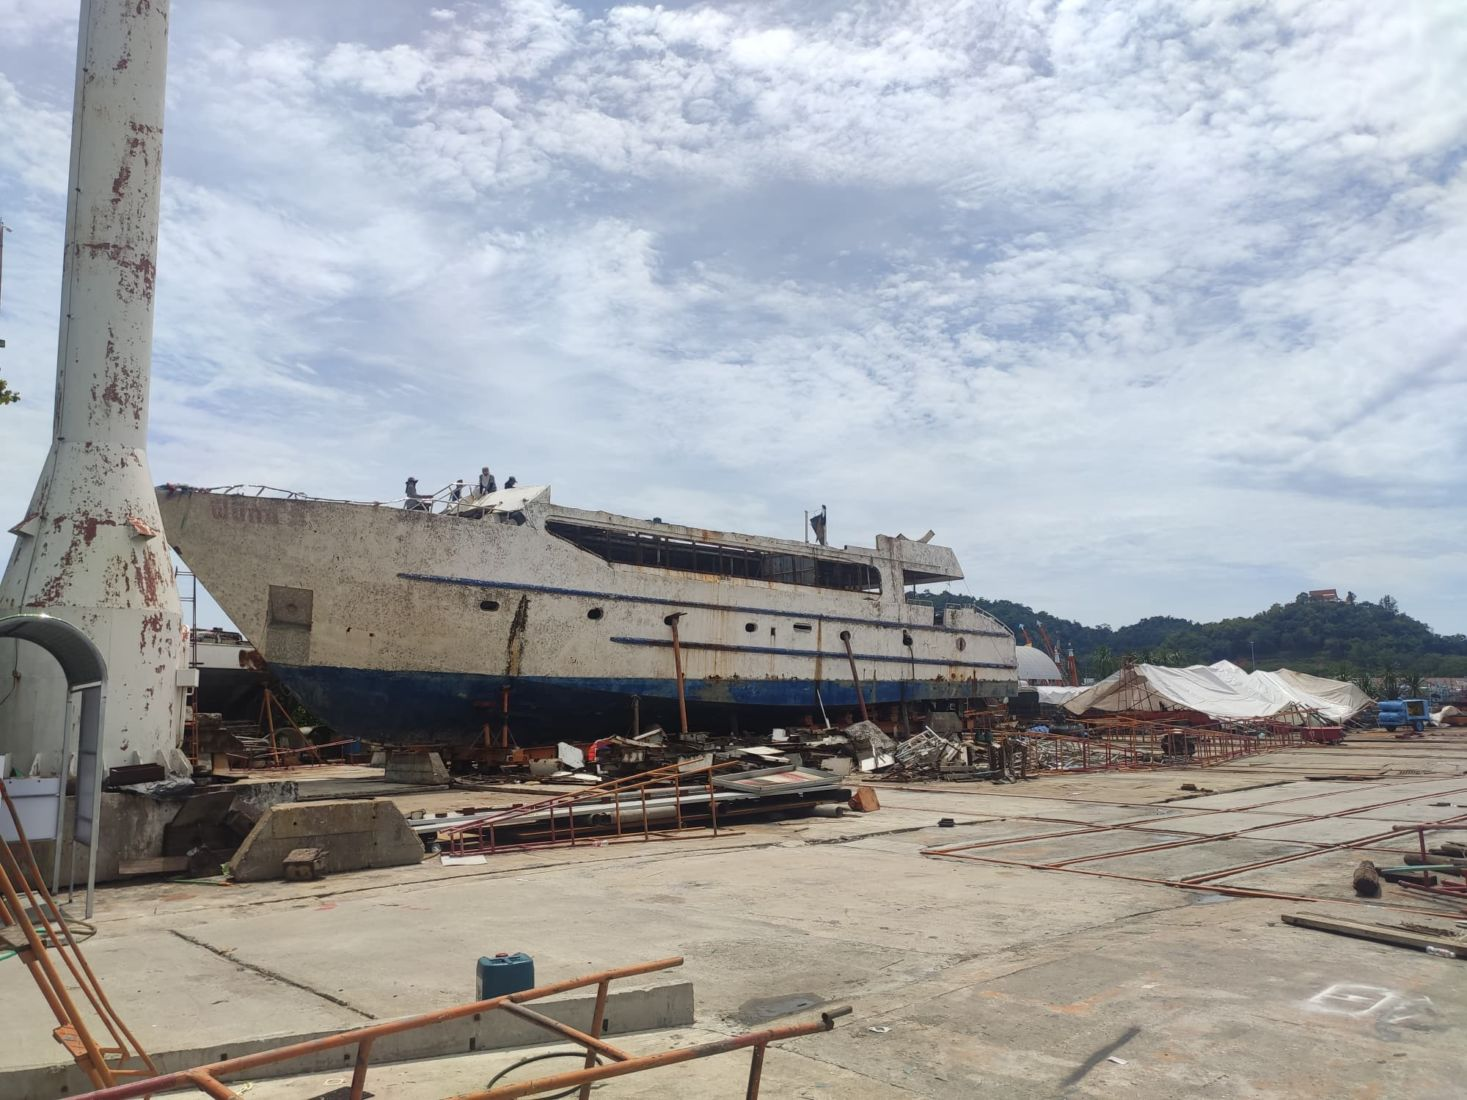 Phuket's killer boat Phoenix ripped apart for scrap metal | News by Thaiger